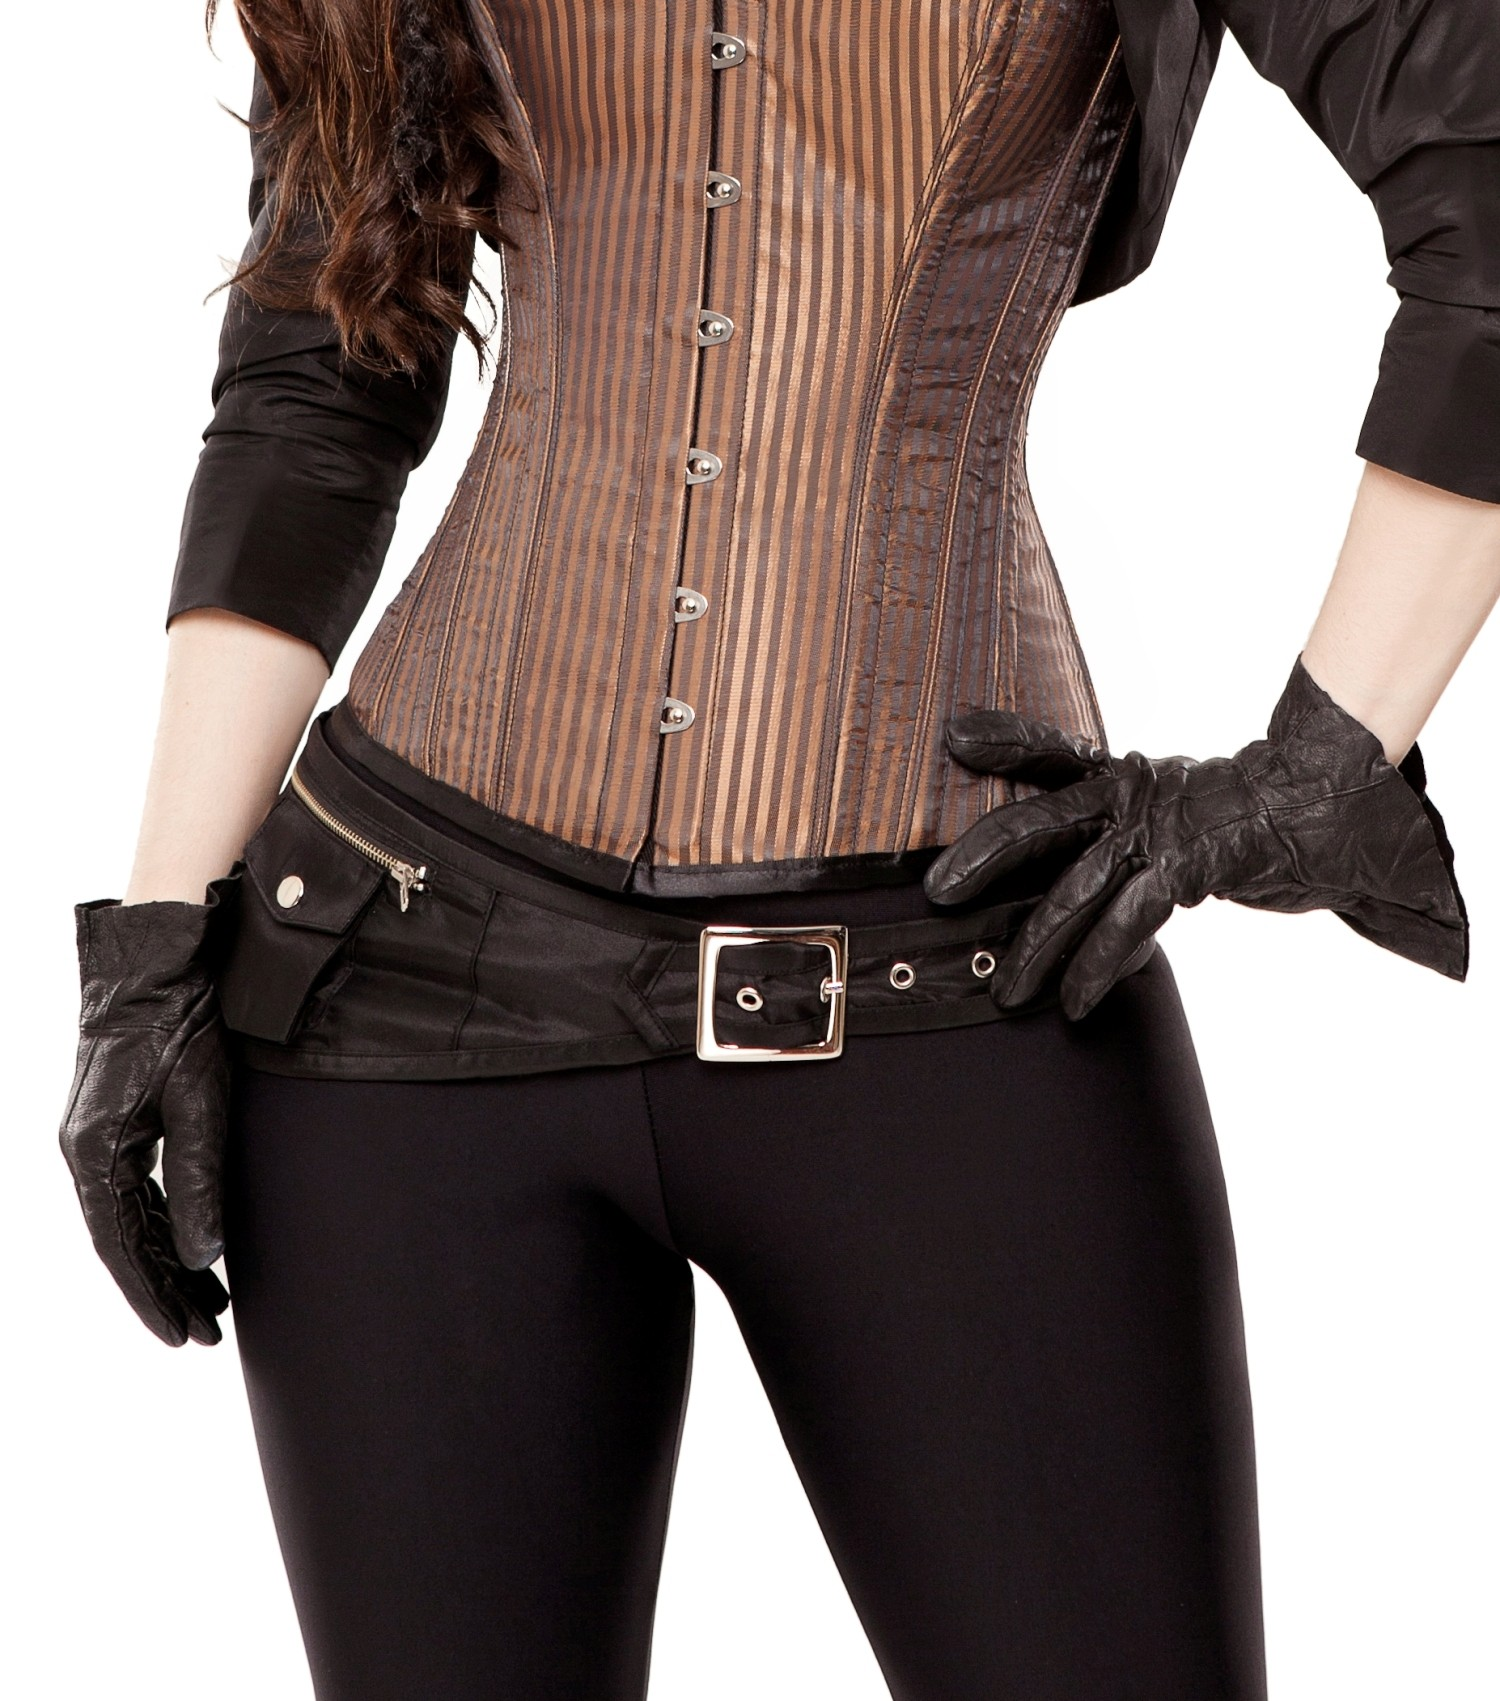 Playgirl Black Tafetta Corset Belt With Pockets